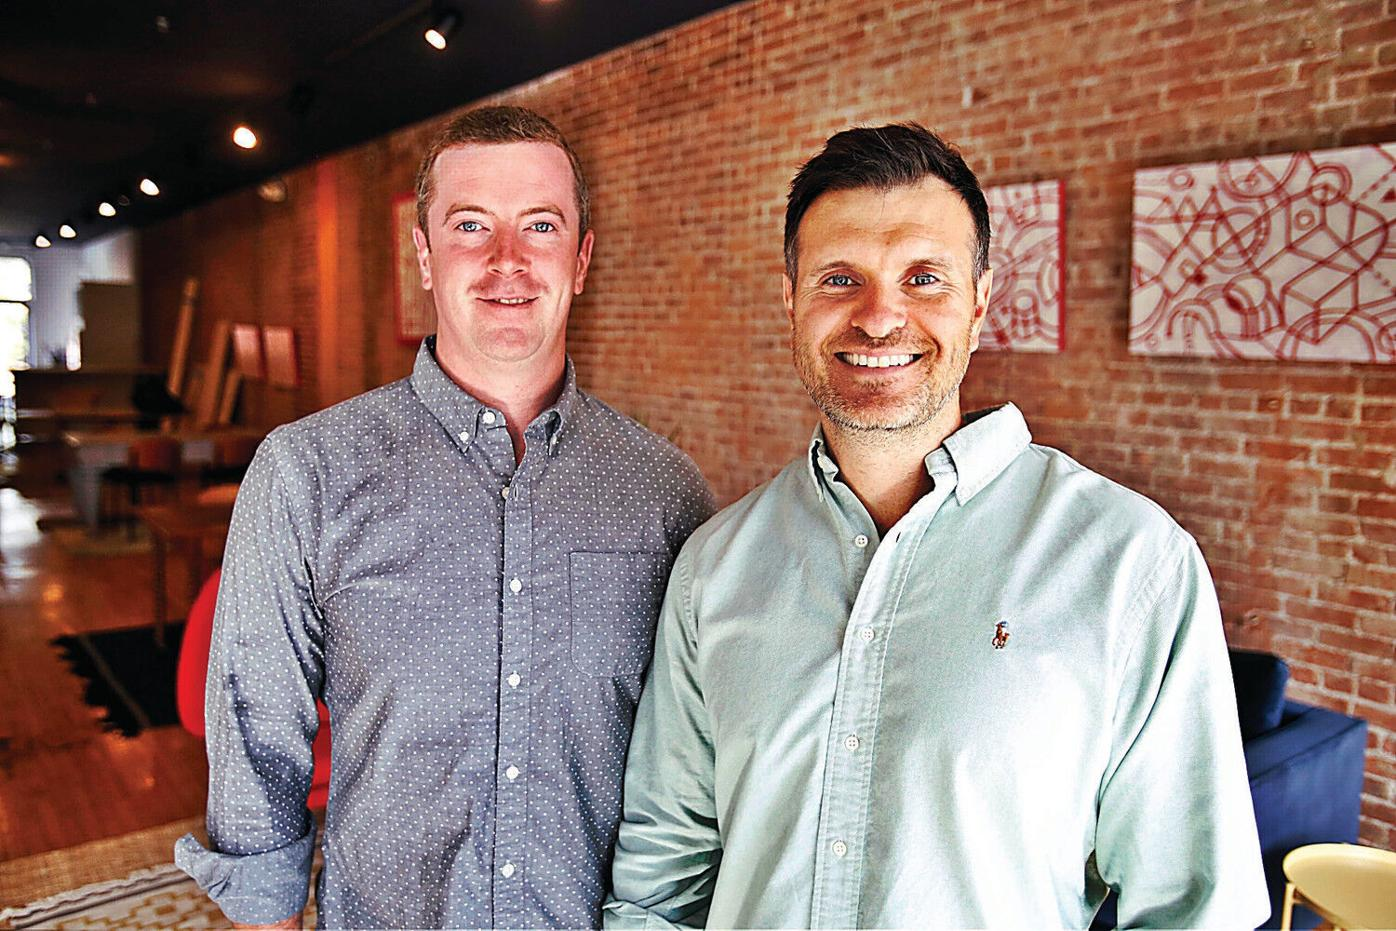 Sharing the office: Frameworks brings national trend of co-working space to Pittsfield